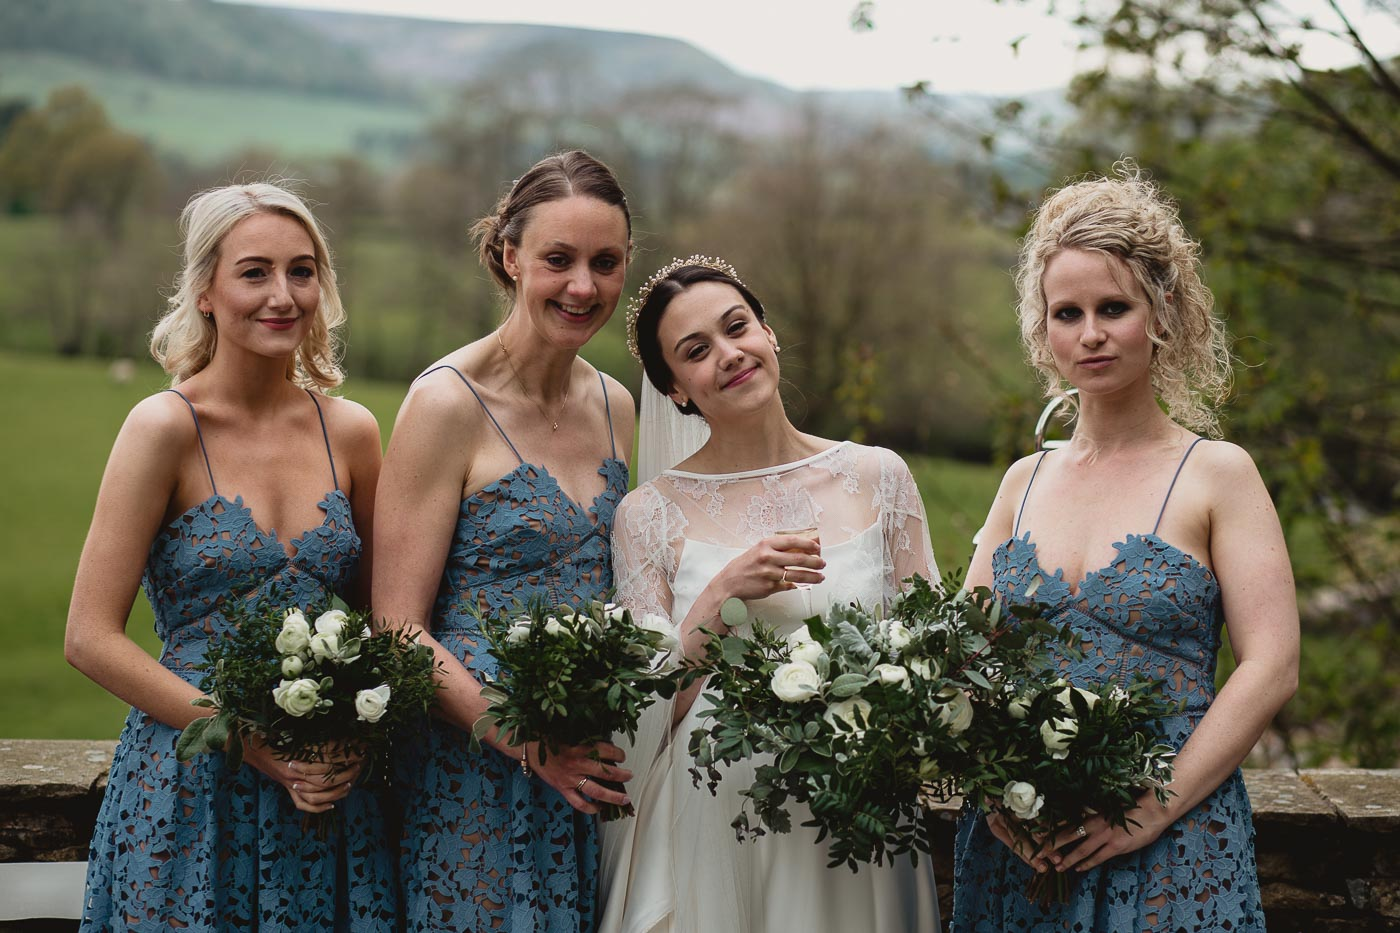 Group photograph of the bride and bridesmaids, Best wedding photographers